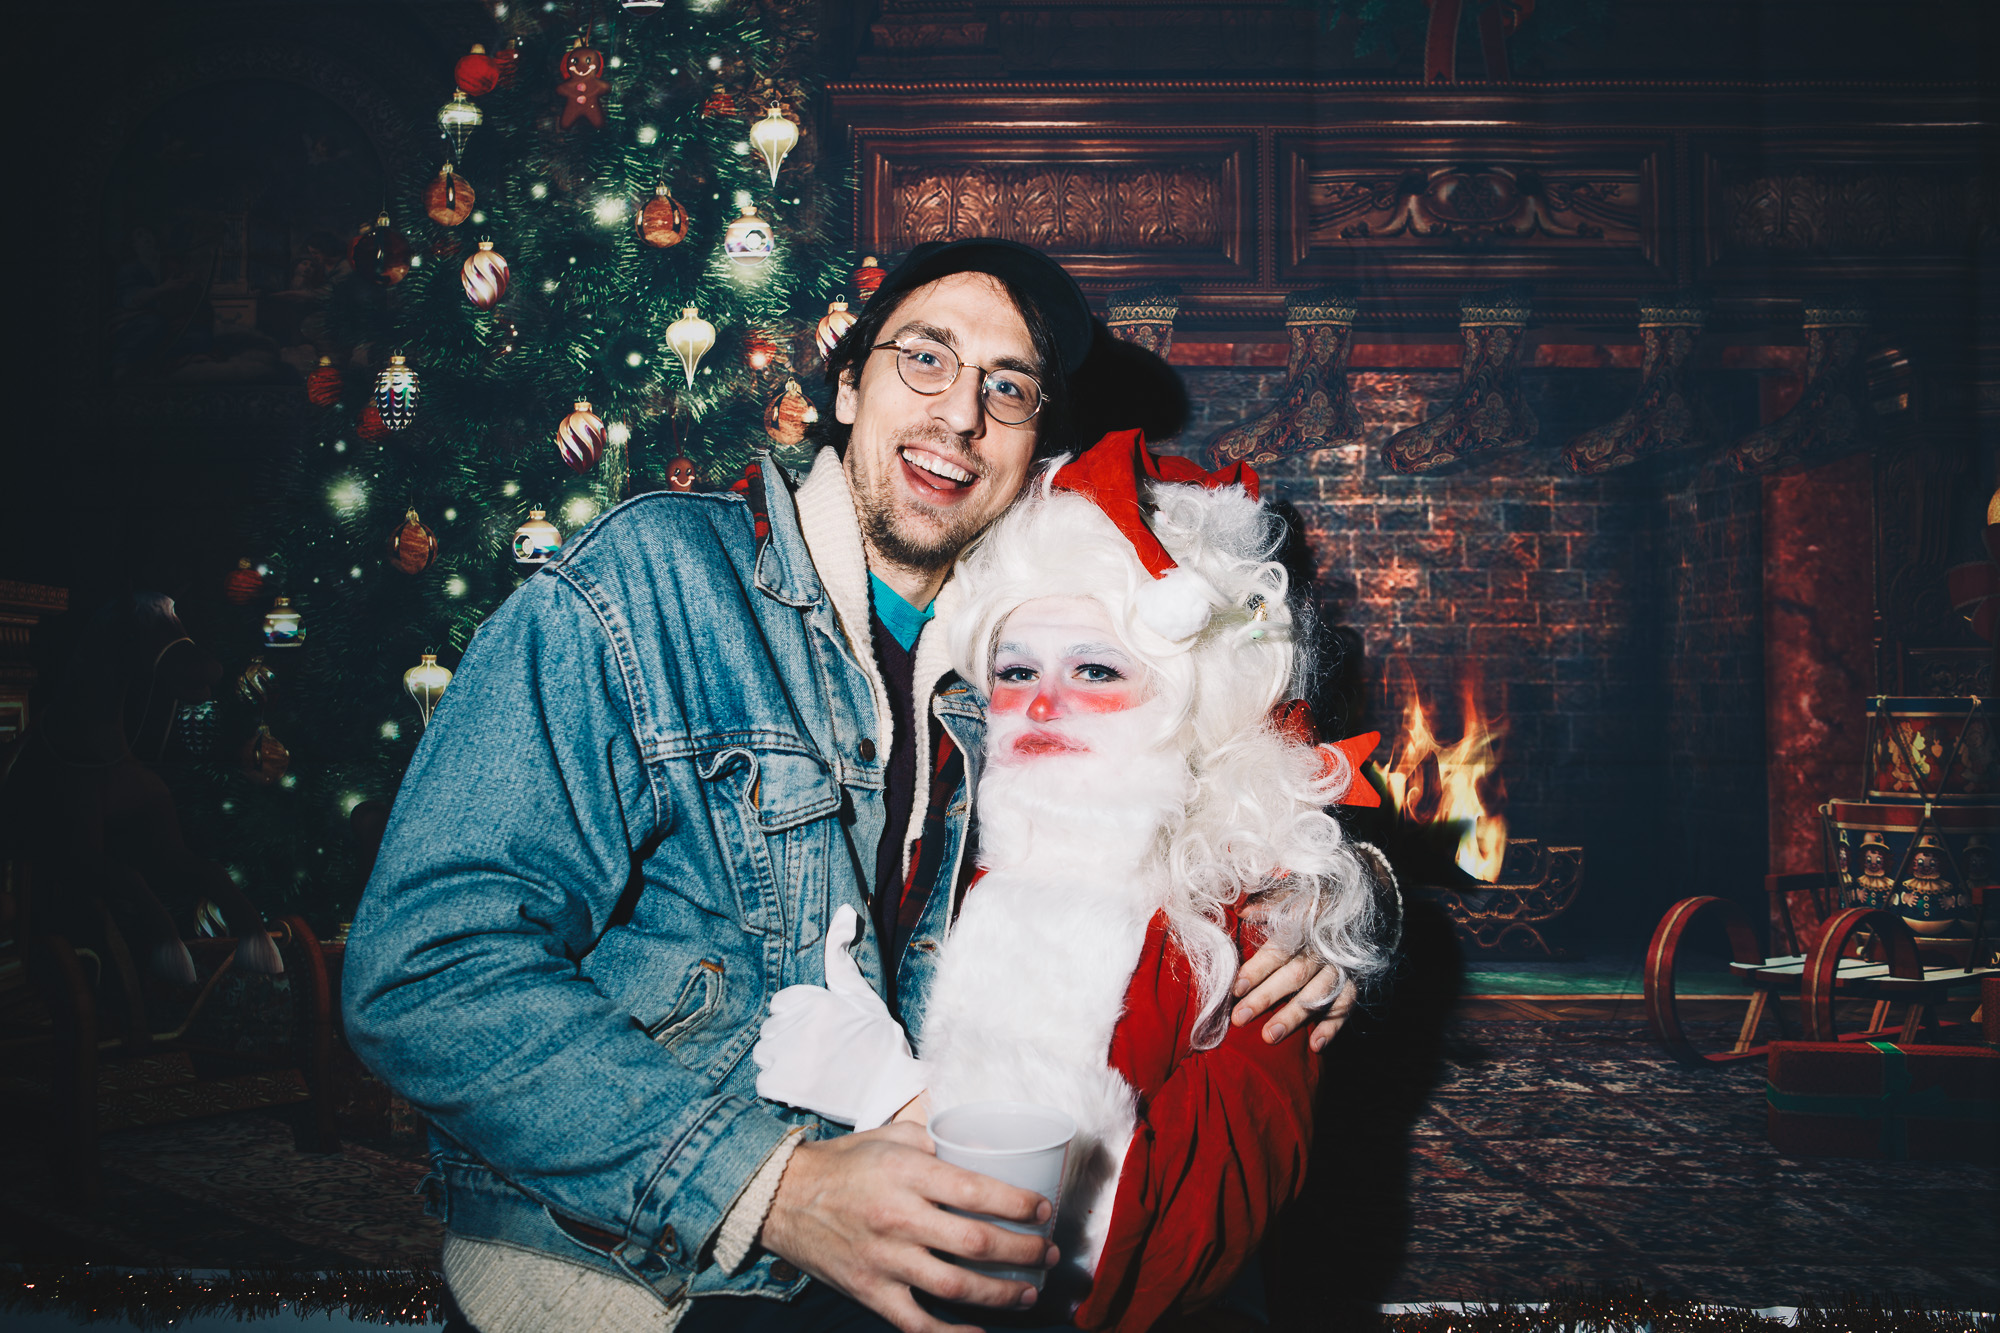 2018_12_15 Christmas Party photos (32 of 211).jpg